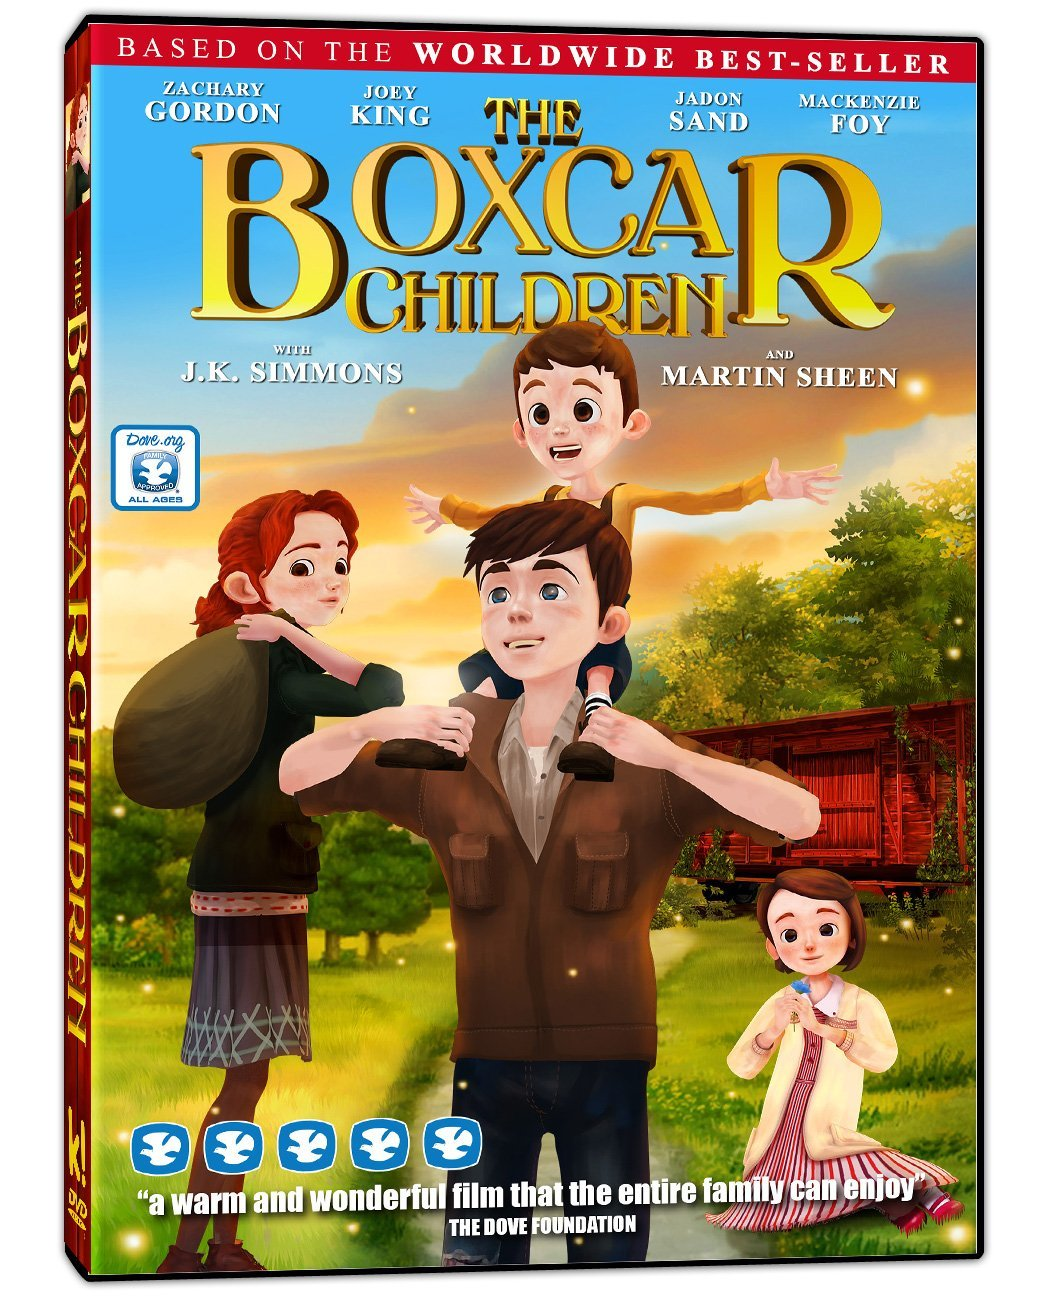 Boxcar Children Book Cover : The boxcar children movie eli s novel reviews